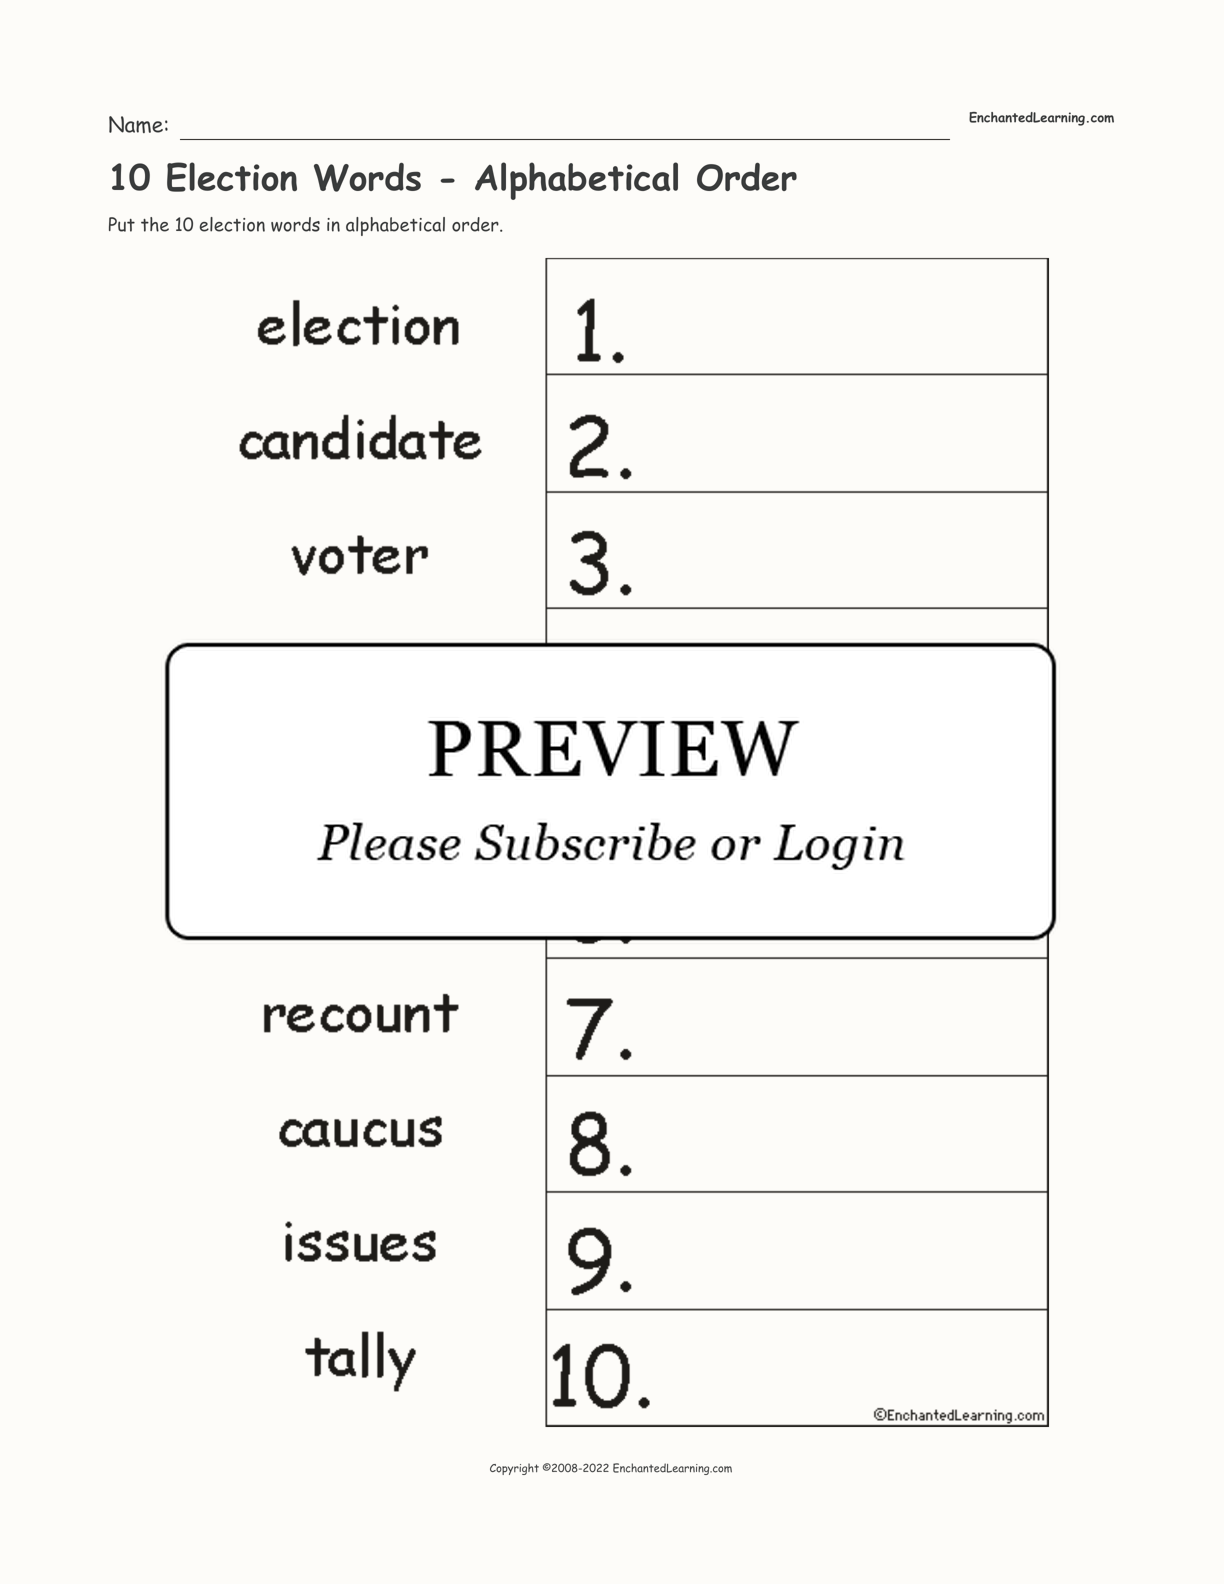 10 Election Words - Alphabetical Order interactive worksheet page 1